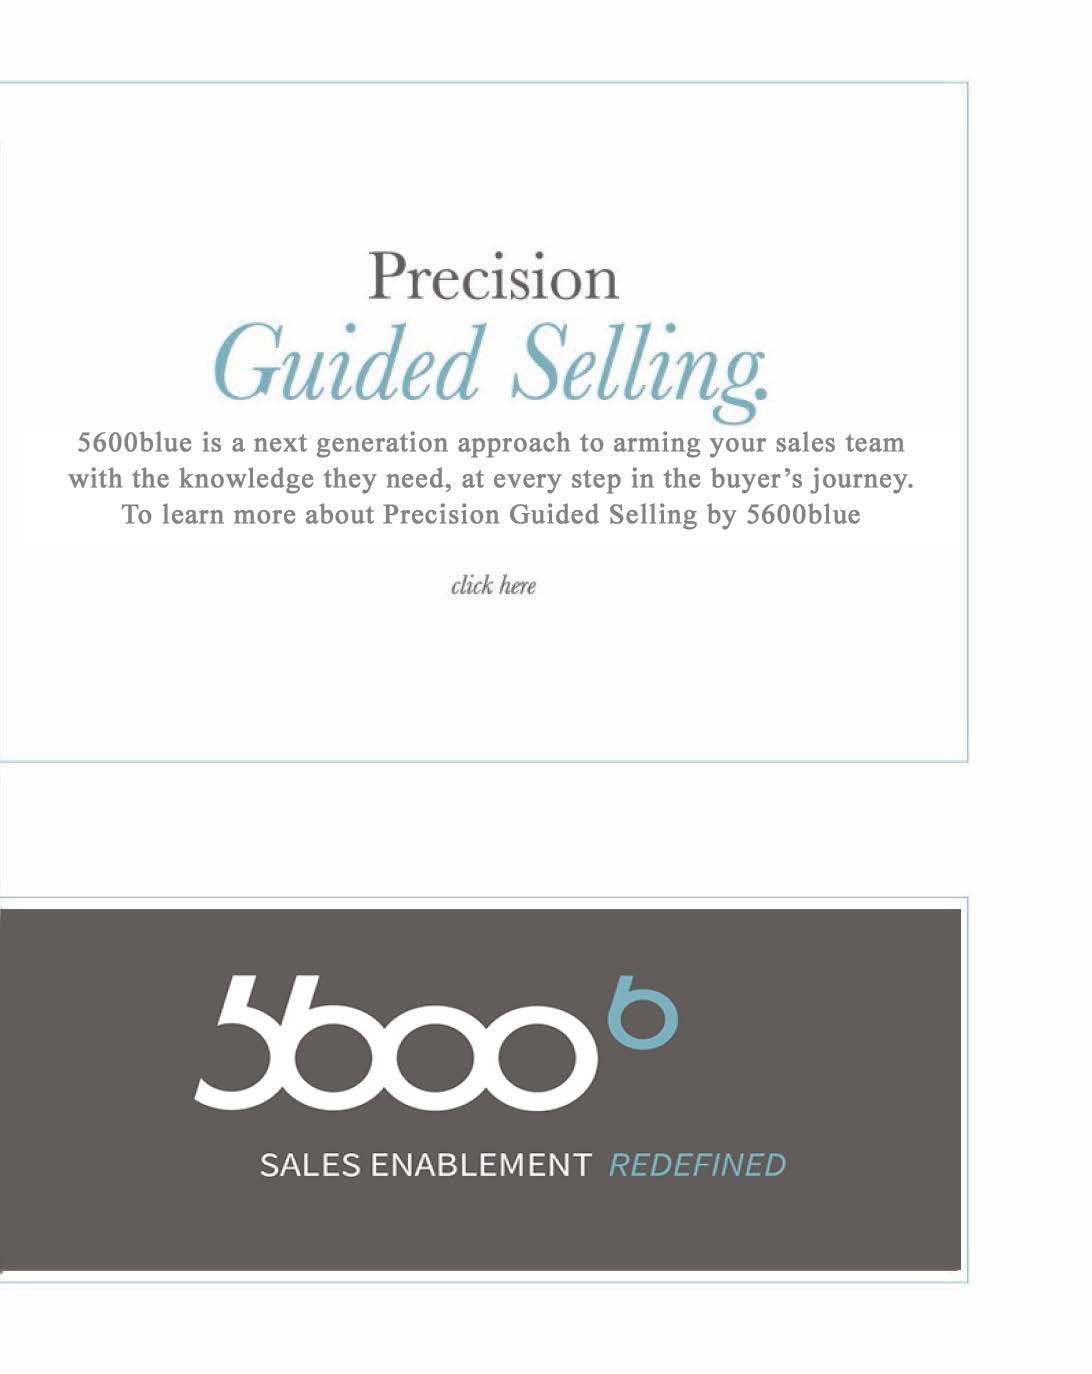 5600blue right side website landing page 2020